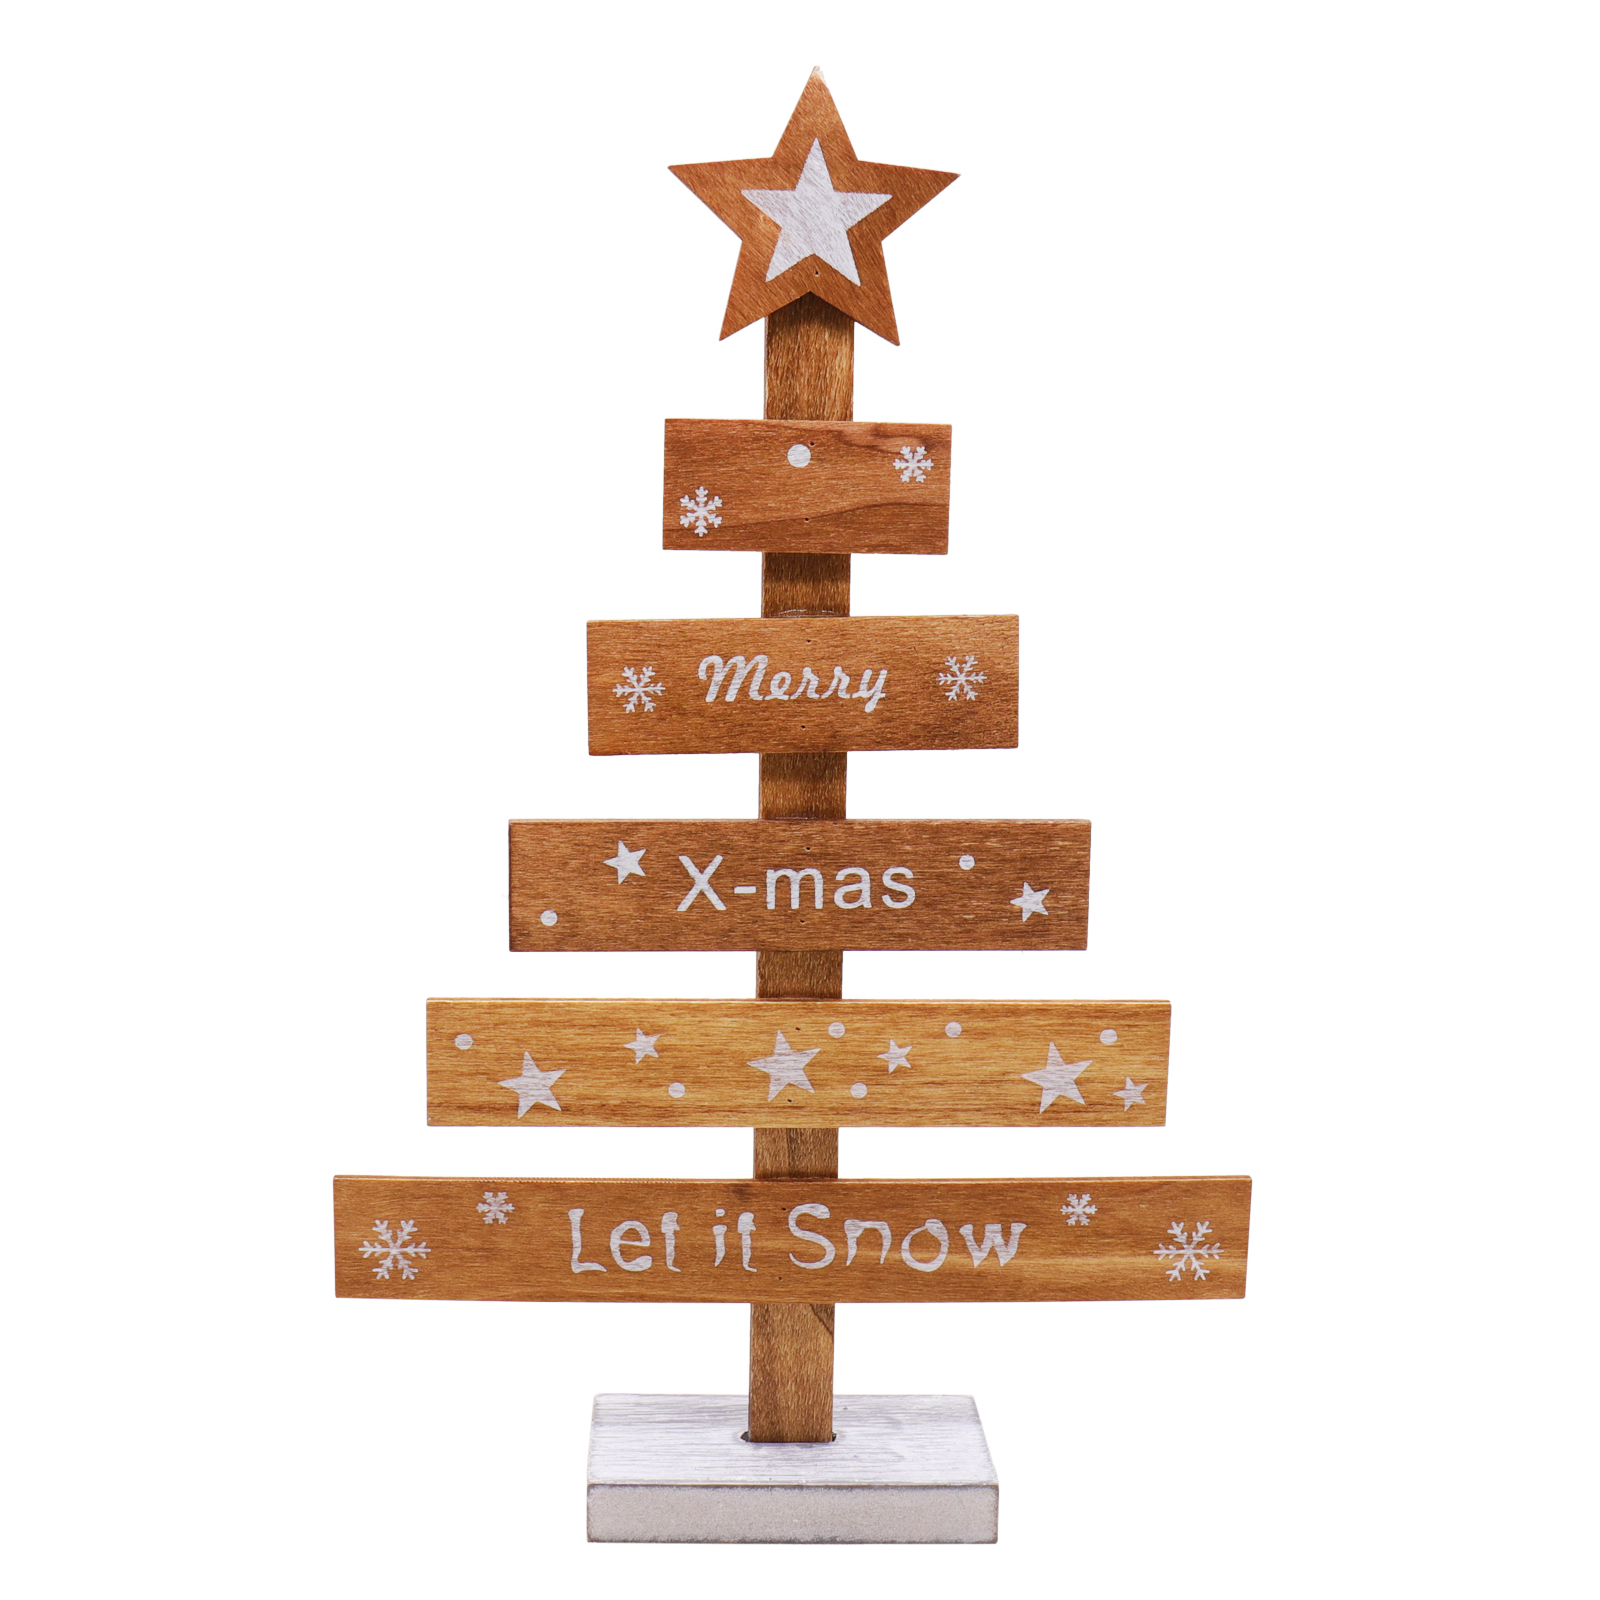 Us 7 98 20 Off Diy Creative Wooden Christmas Tree Ornaments Office Home Bedroom Desktop Decoration Xmas Gift In Trees From Home Garden On